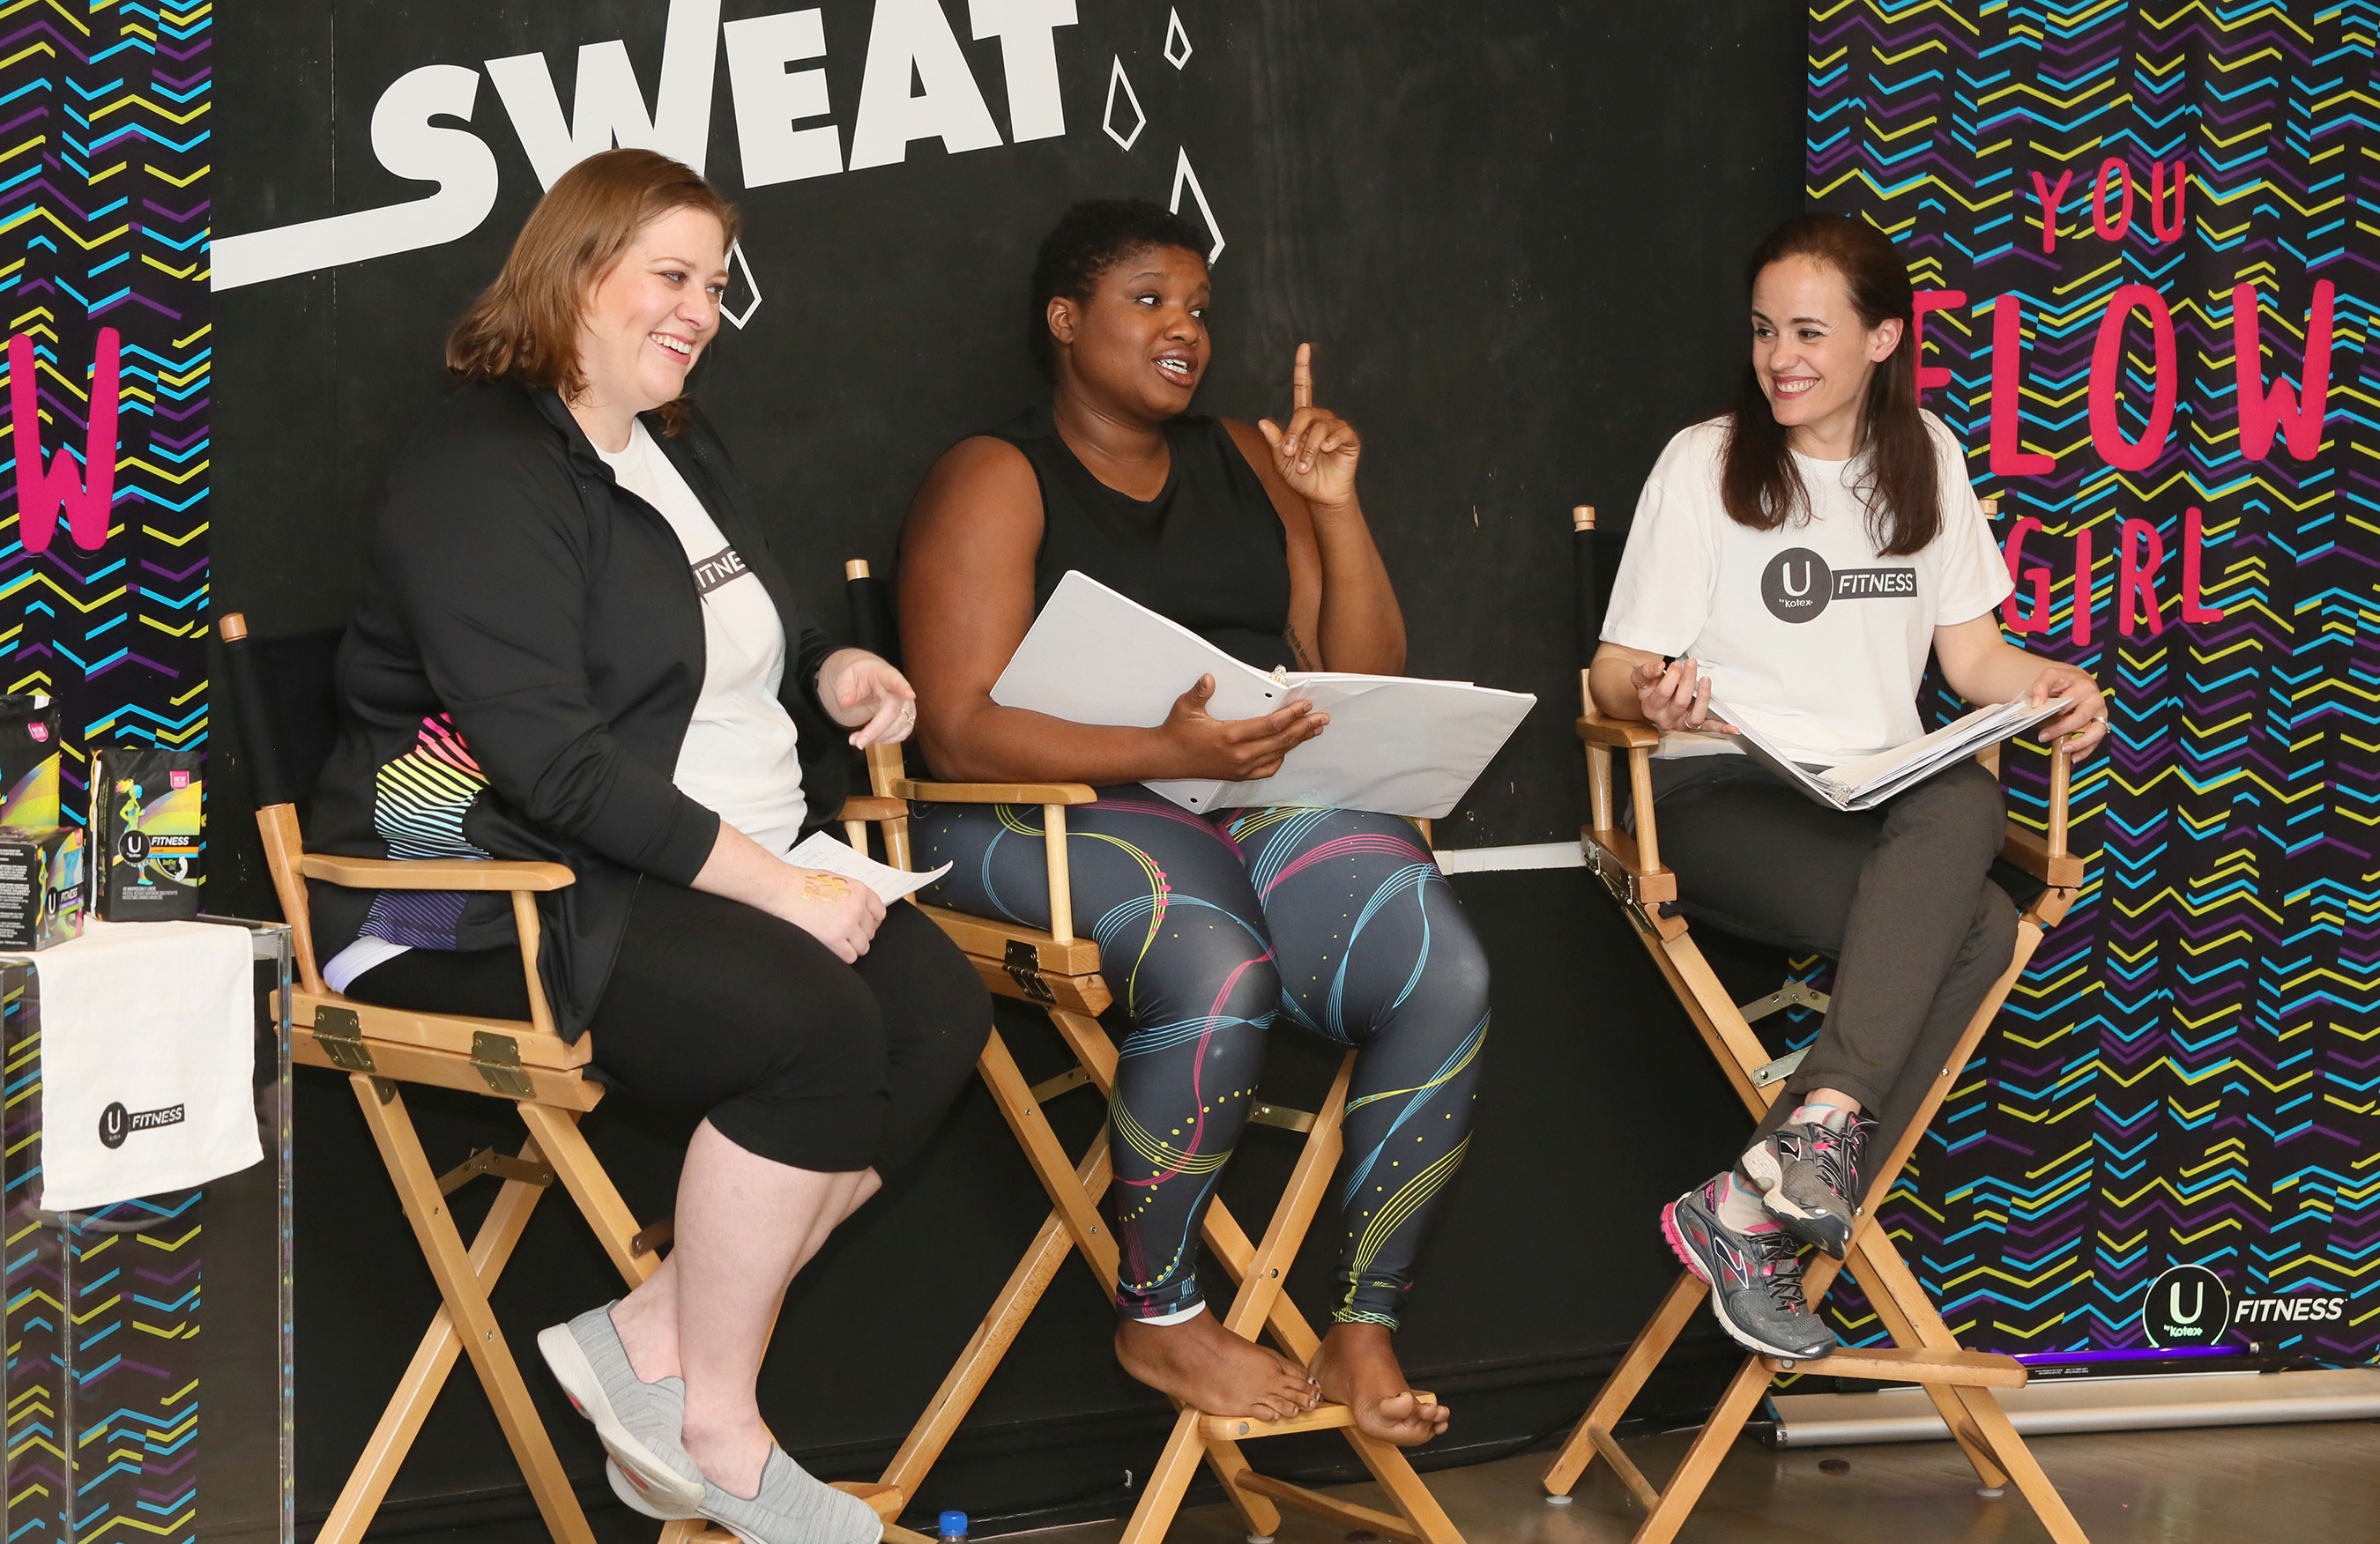 Yoga teacher and body positivity advocate Jessamyn Stanley, center, hosts a panel discussion with Melissa Jacobs, Senior Brand Manager for U by Kotex, left, and licensed clinical psychologist Dr. Elisabeth B. Morray, right, in New York City to celebrate the launch of the NEW U by Kotex® FITNESS* line on Thursday, April 27, 2017. (Stuart Ramson/AP Images for U by Kotex® FITNESS)